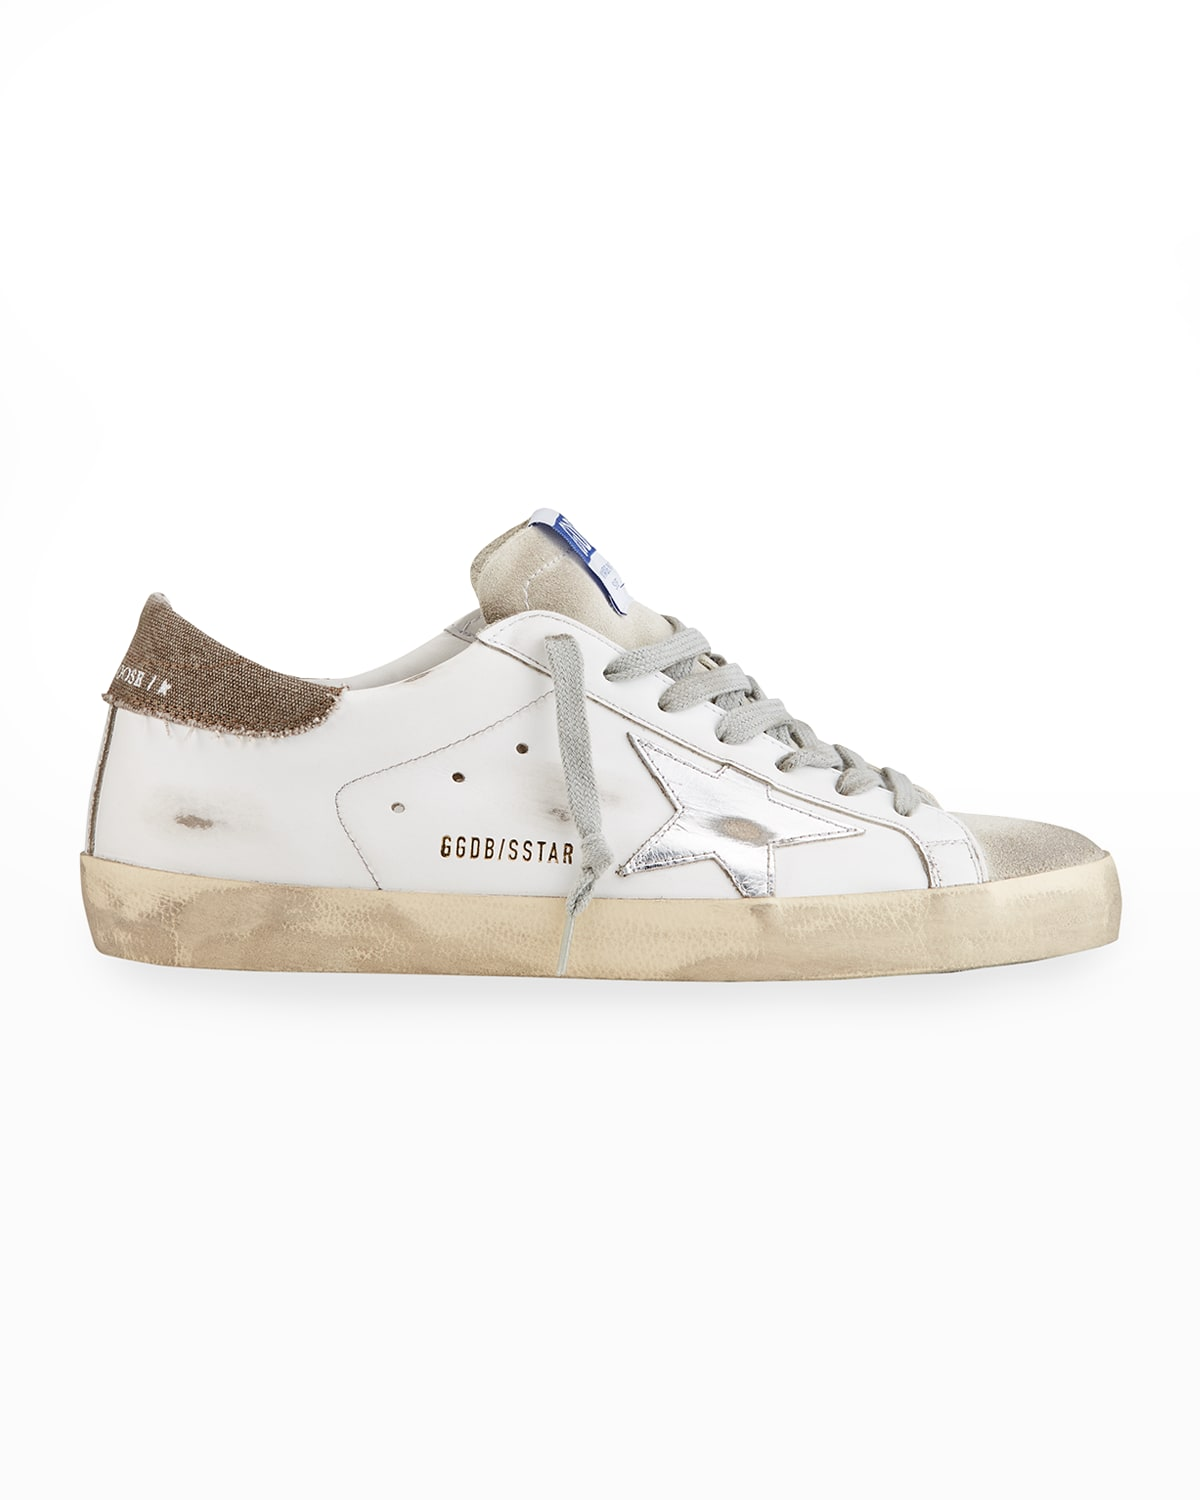 Men's Super Star Distressed Leather Low-Top Sneakers